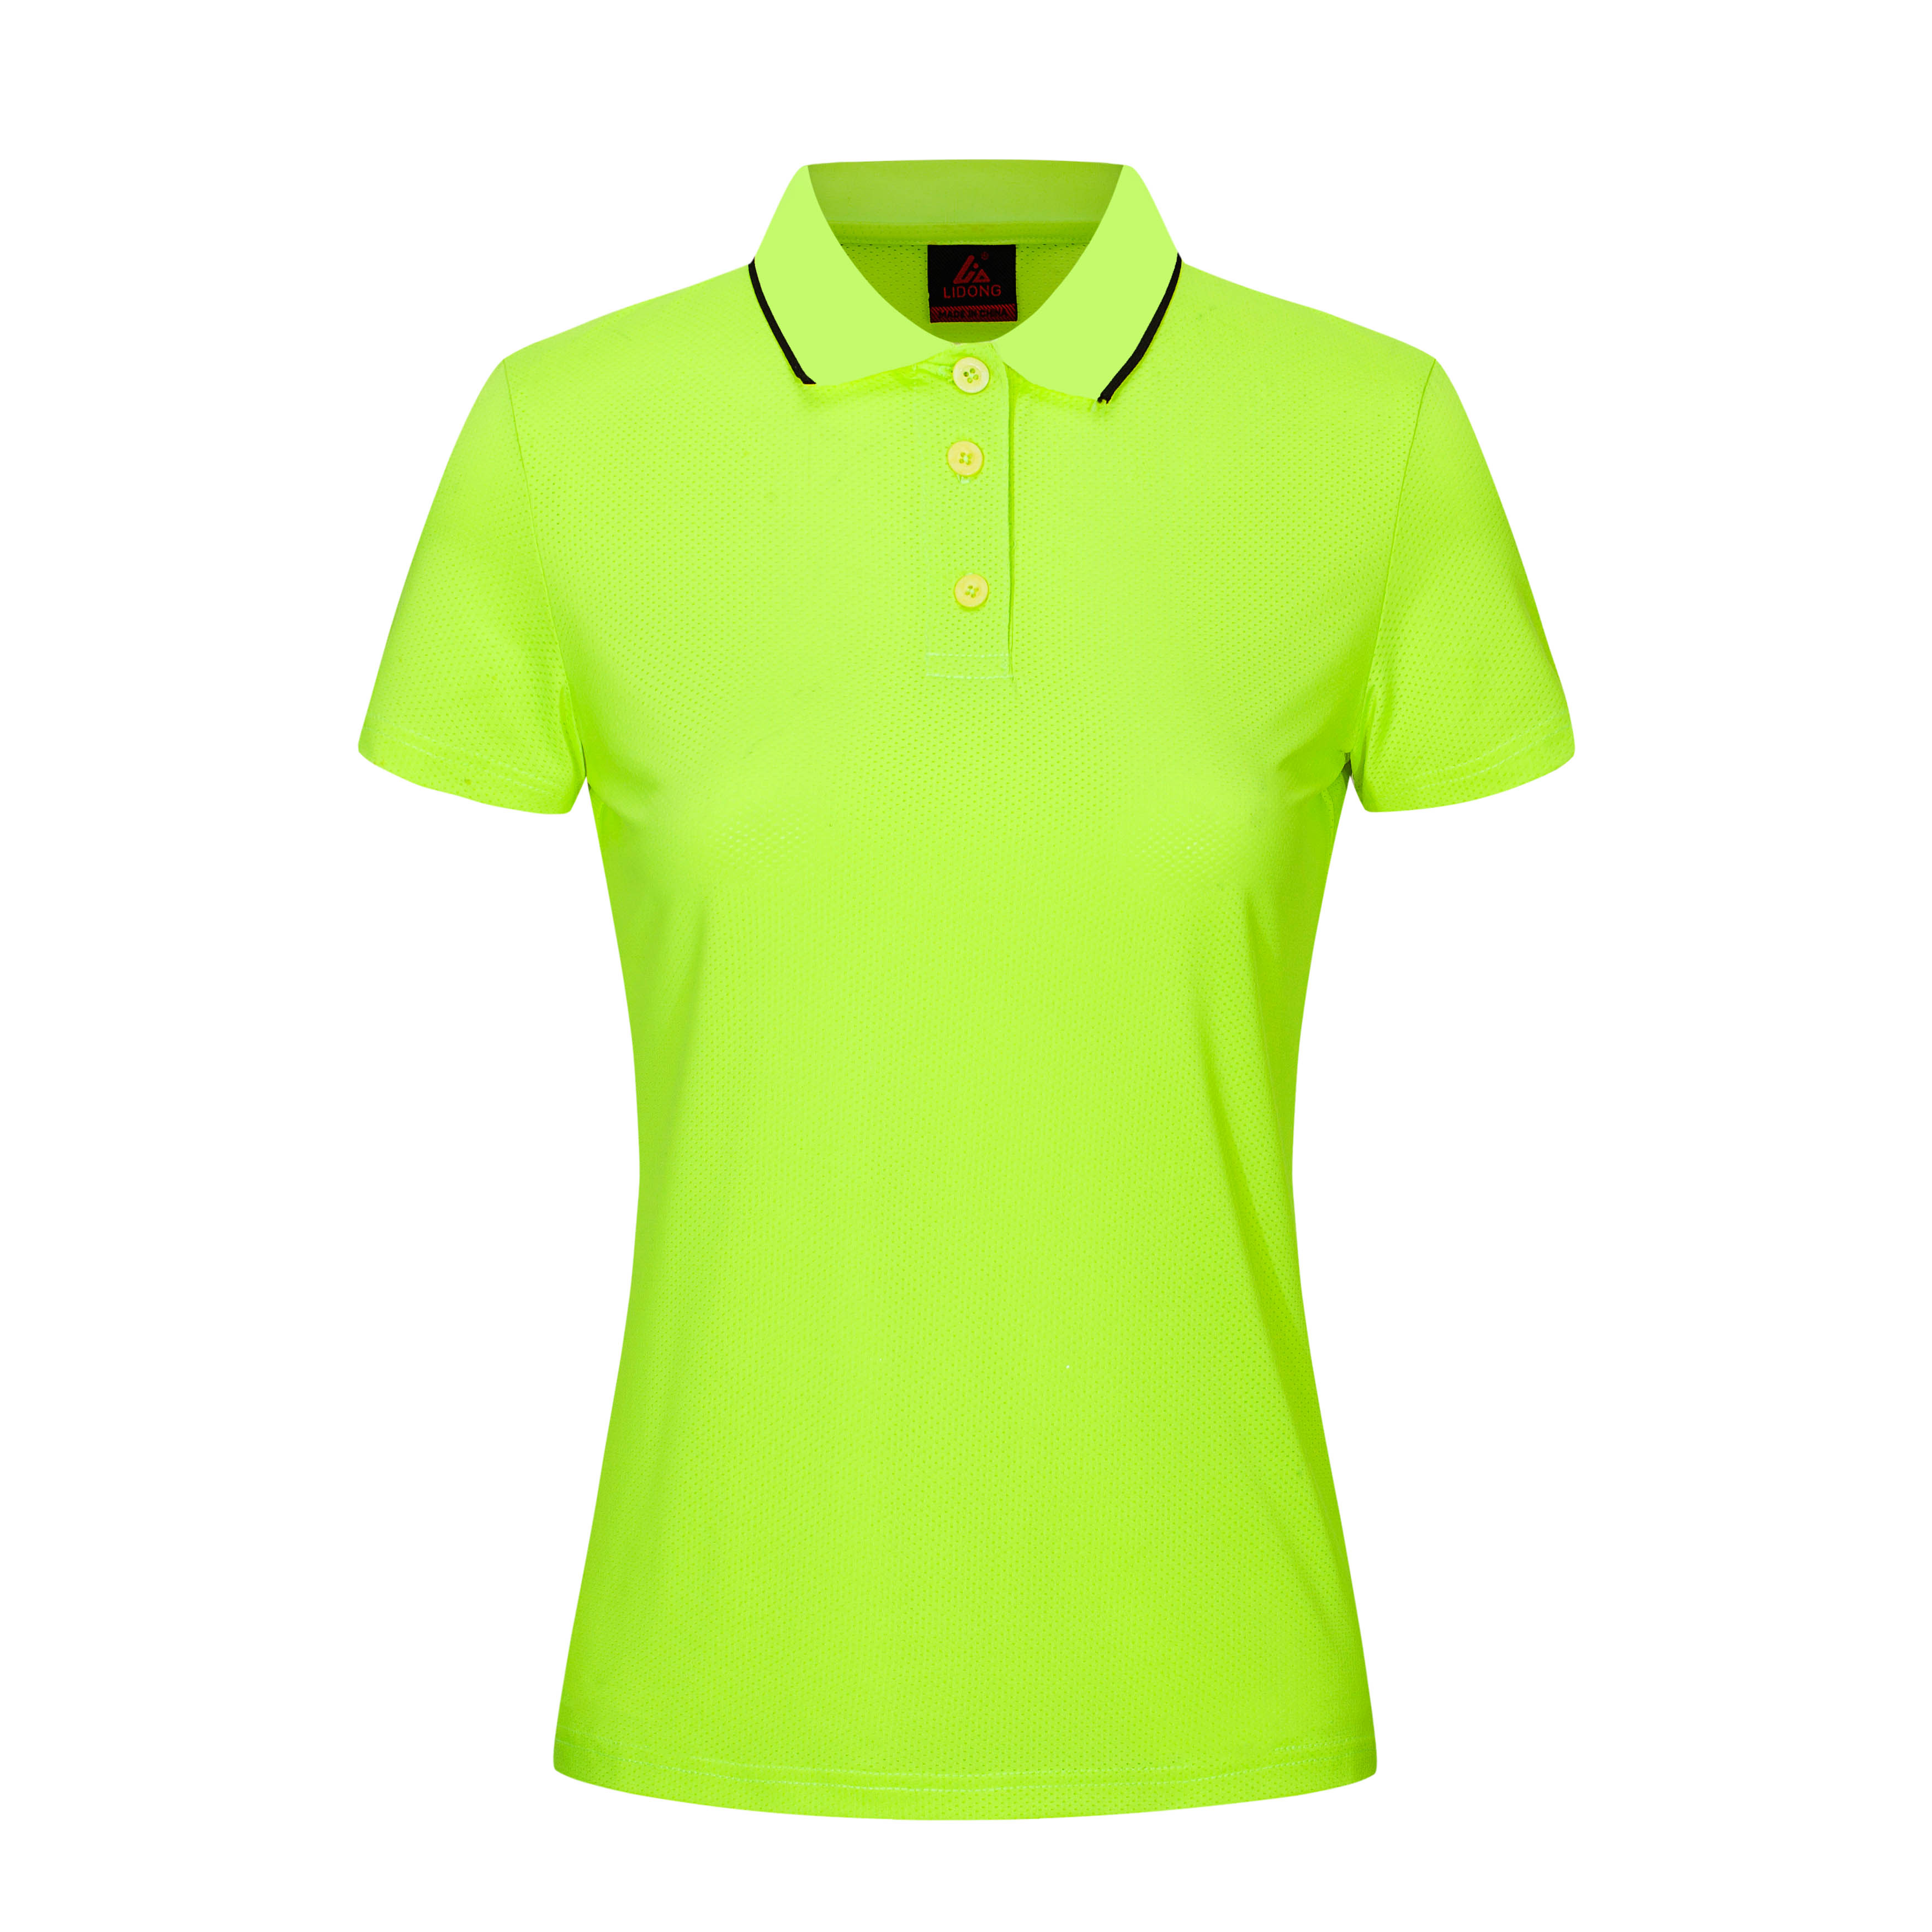 Top Quality T Shirt, Wholesale <strong>men</strong> and women Custom Polo Shirts With Embroidery